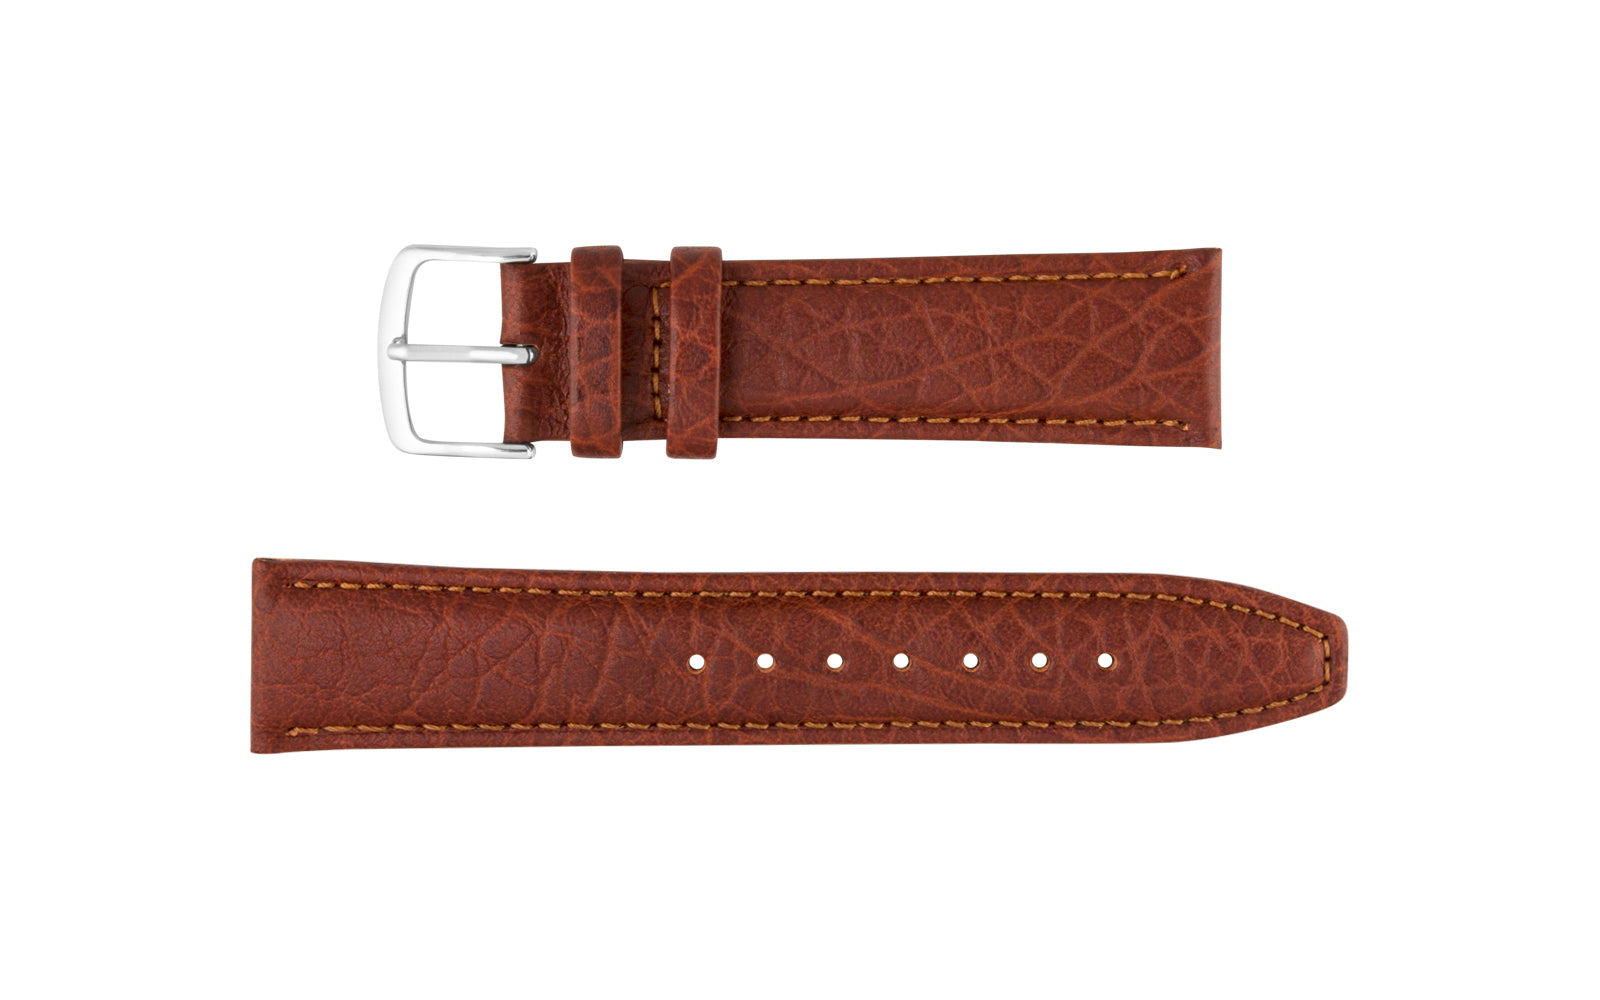 Hadley-Roma Men's Tan Genuine Shrunken Grain Leather Watch Strap MS788